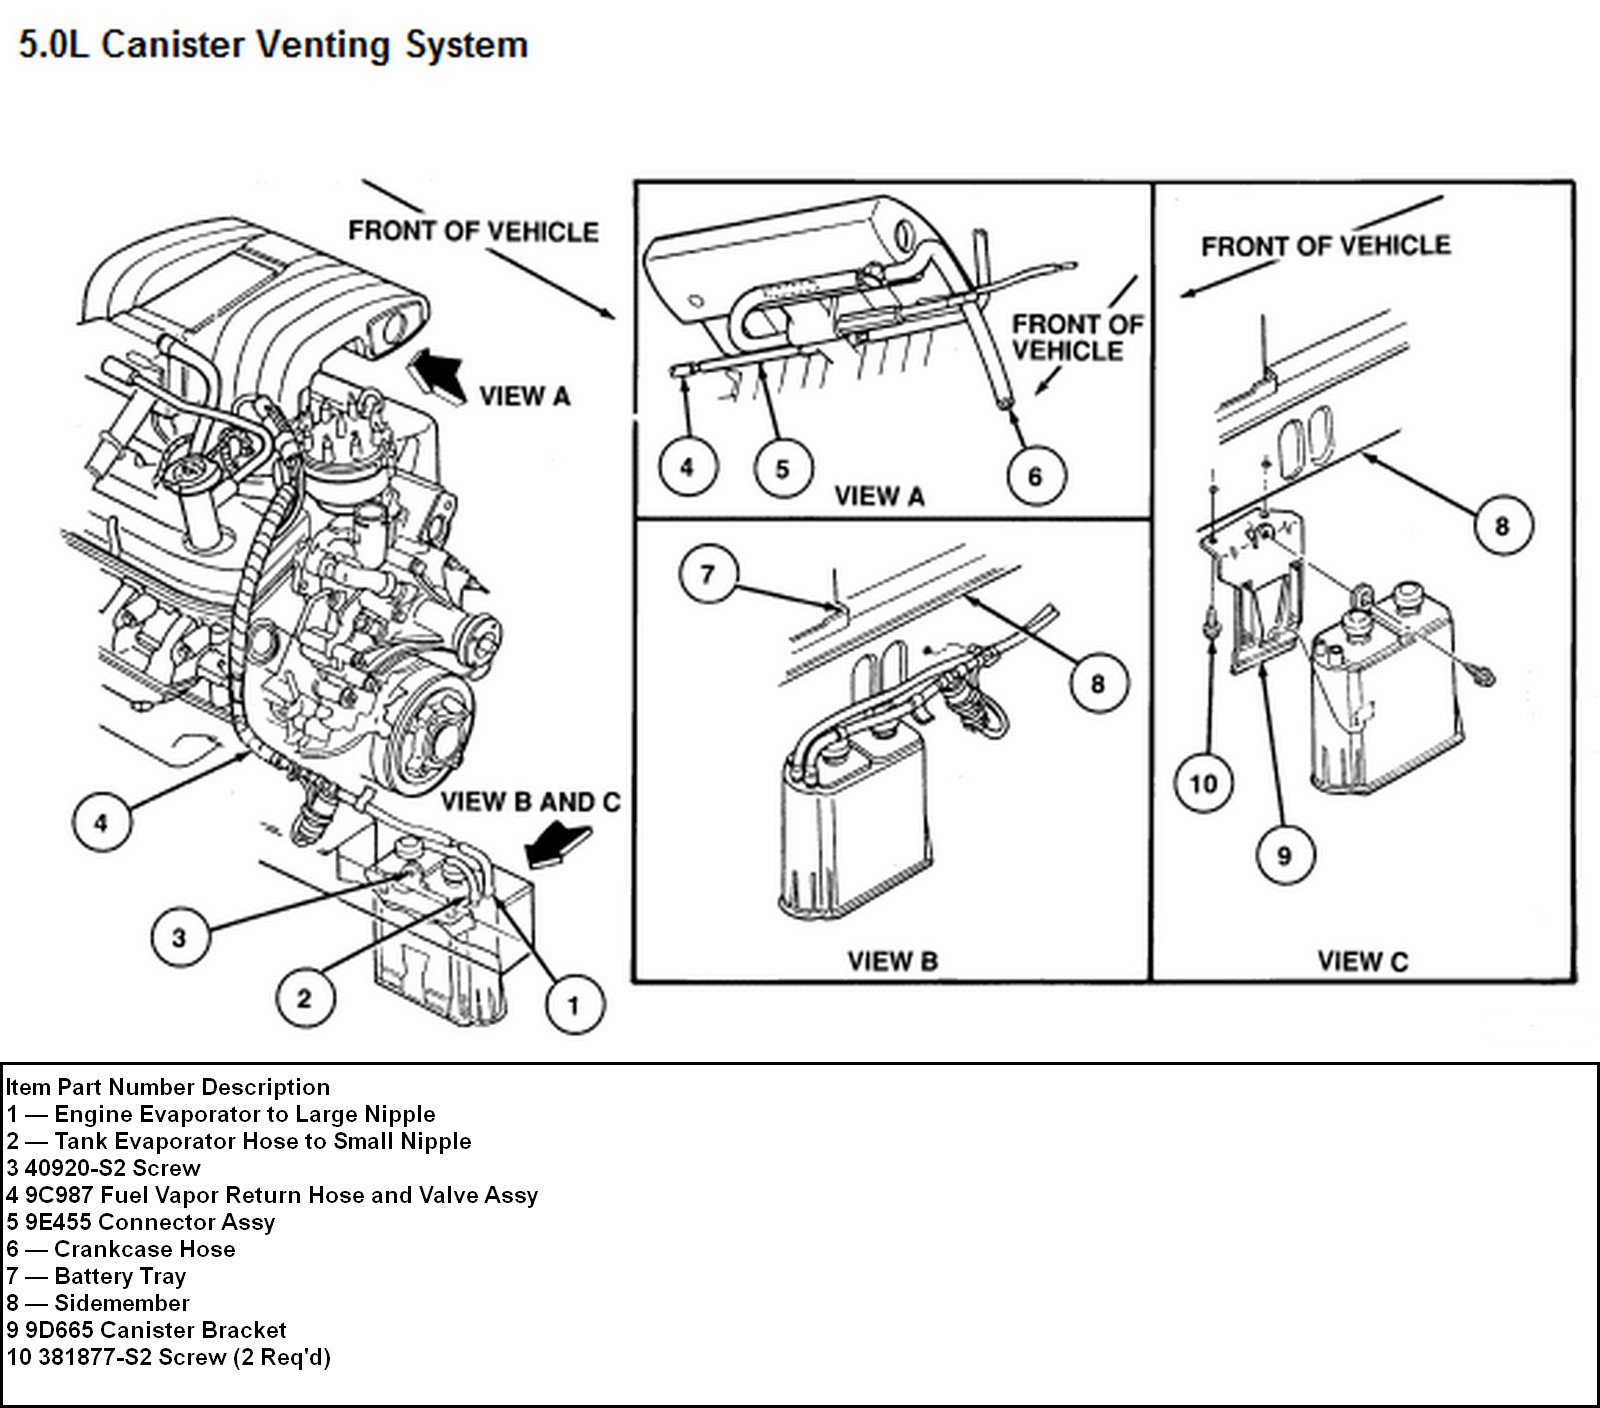 93 Mustang Fuse Box Wiring Library 91 Engine 2010 03 05 034838 87 50 Evap Diagrams 1213973 1990 Diagram